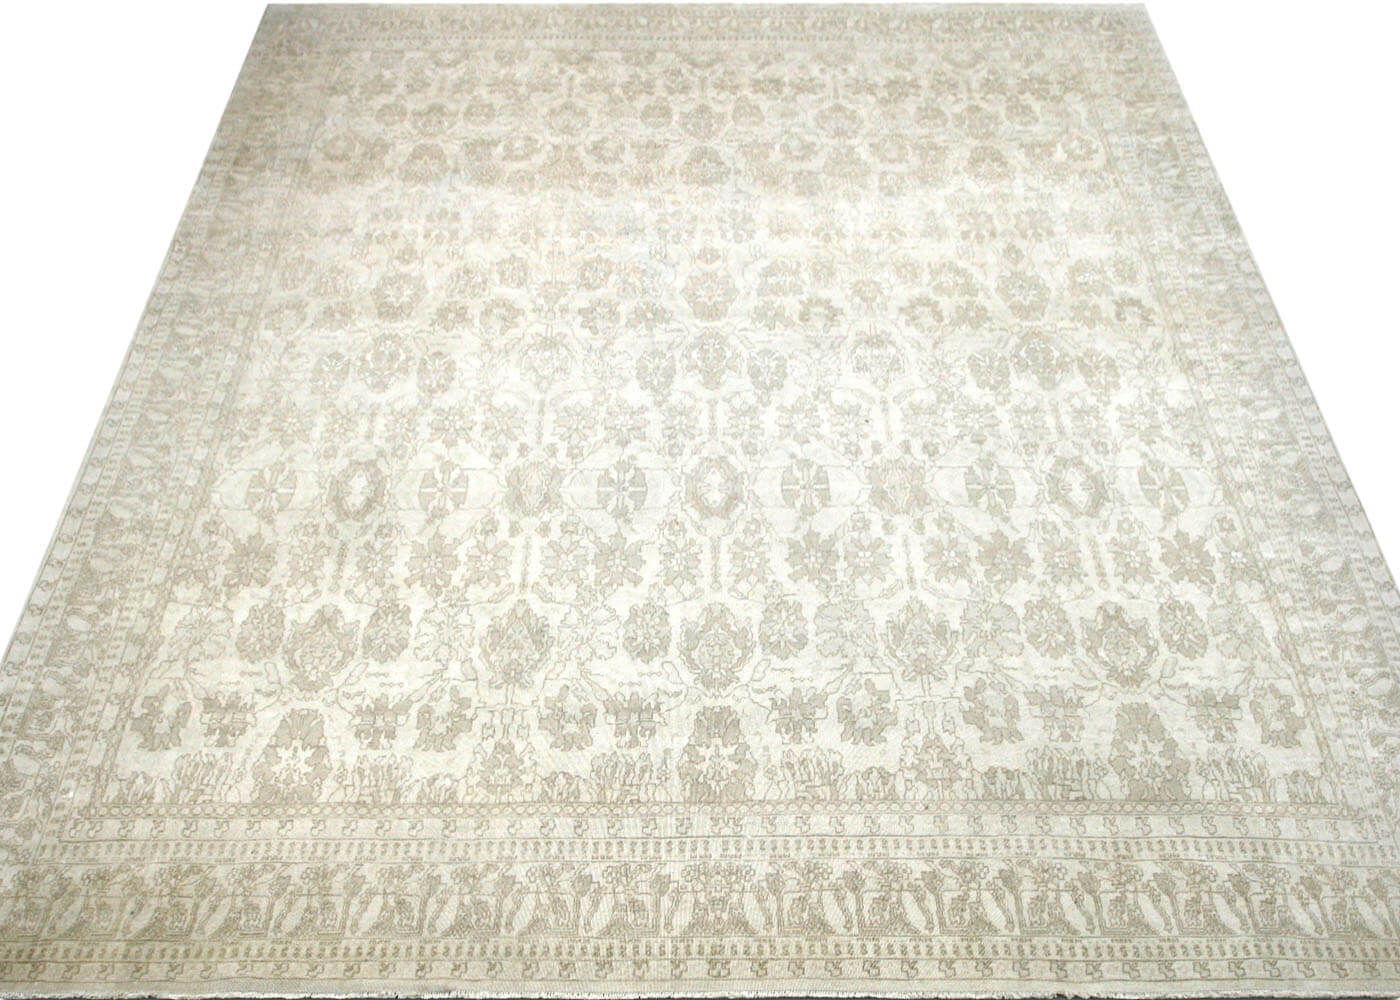 "Recently Woven Egyptian Tabriz Carpet - 14'7"" x 15'10"""